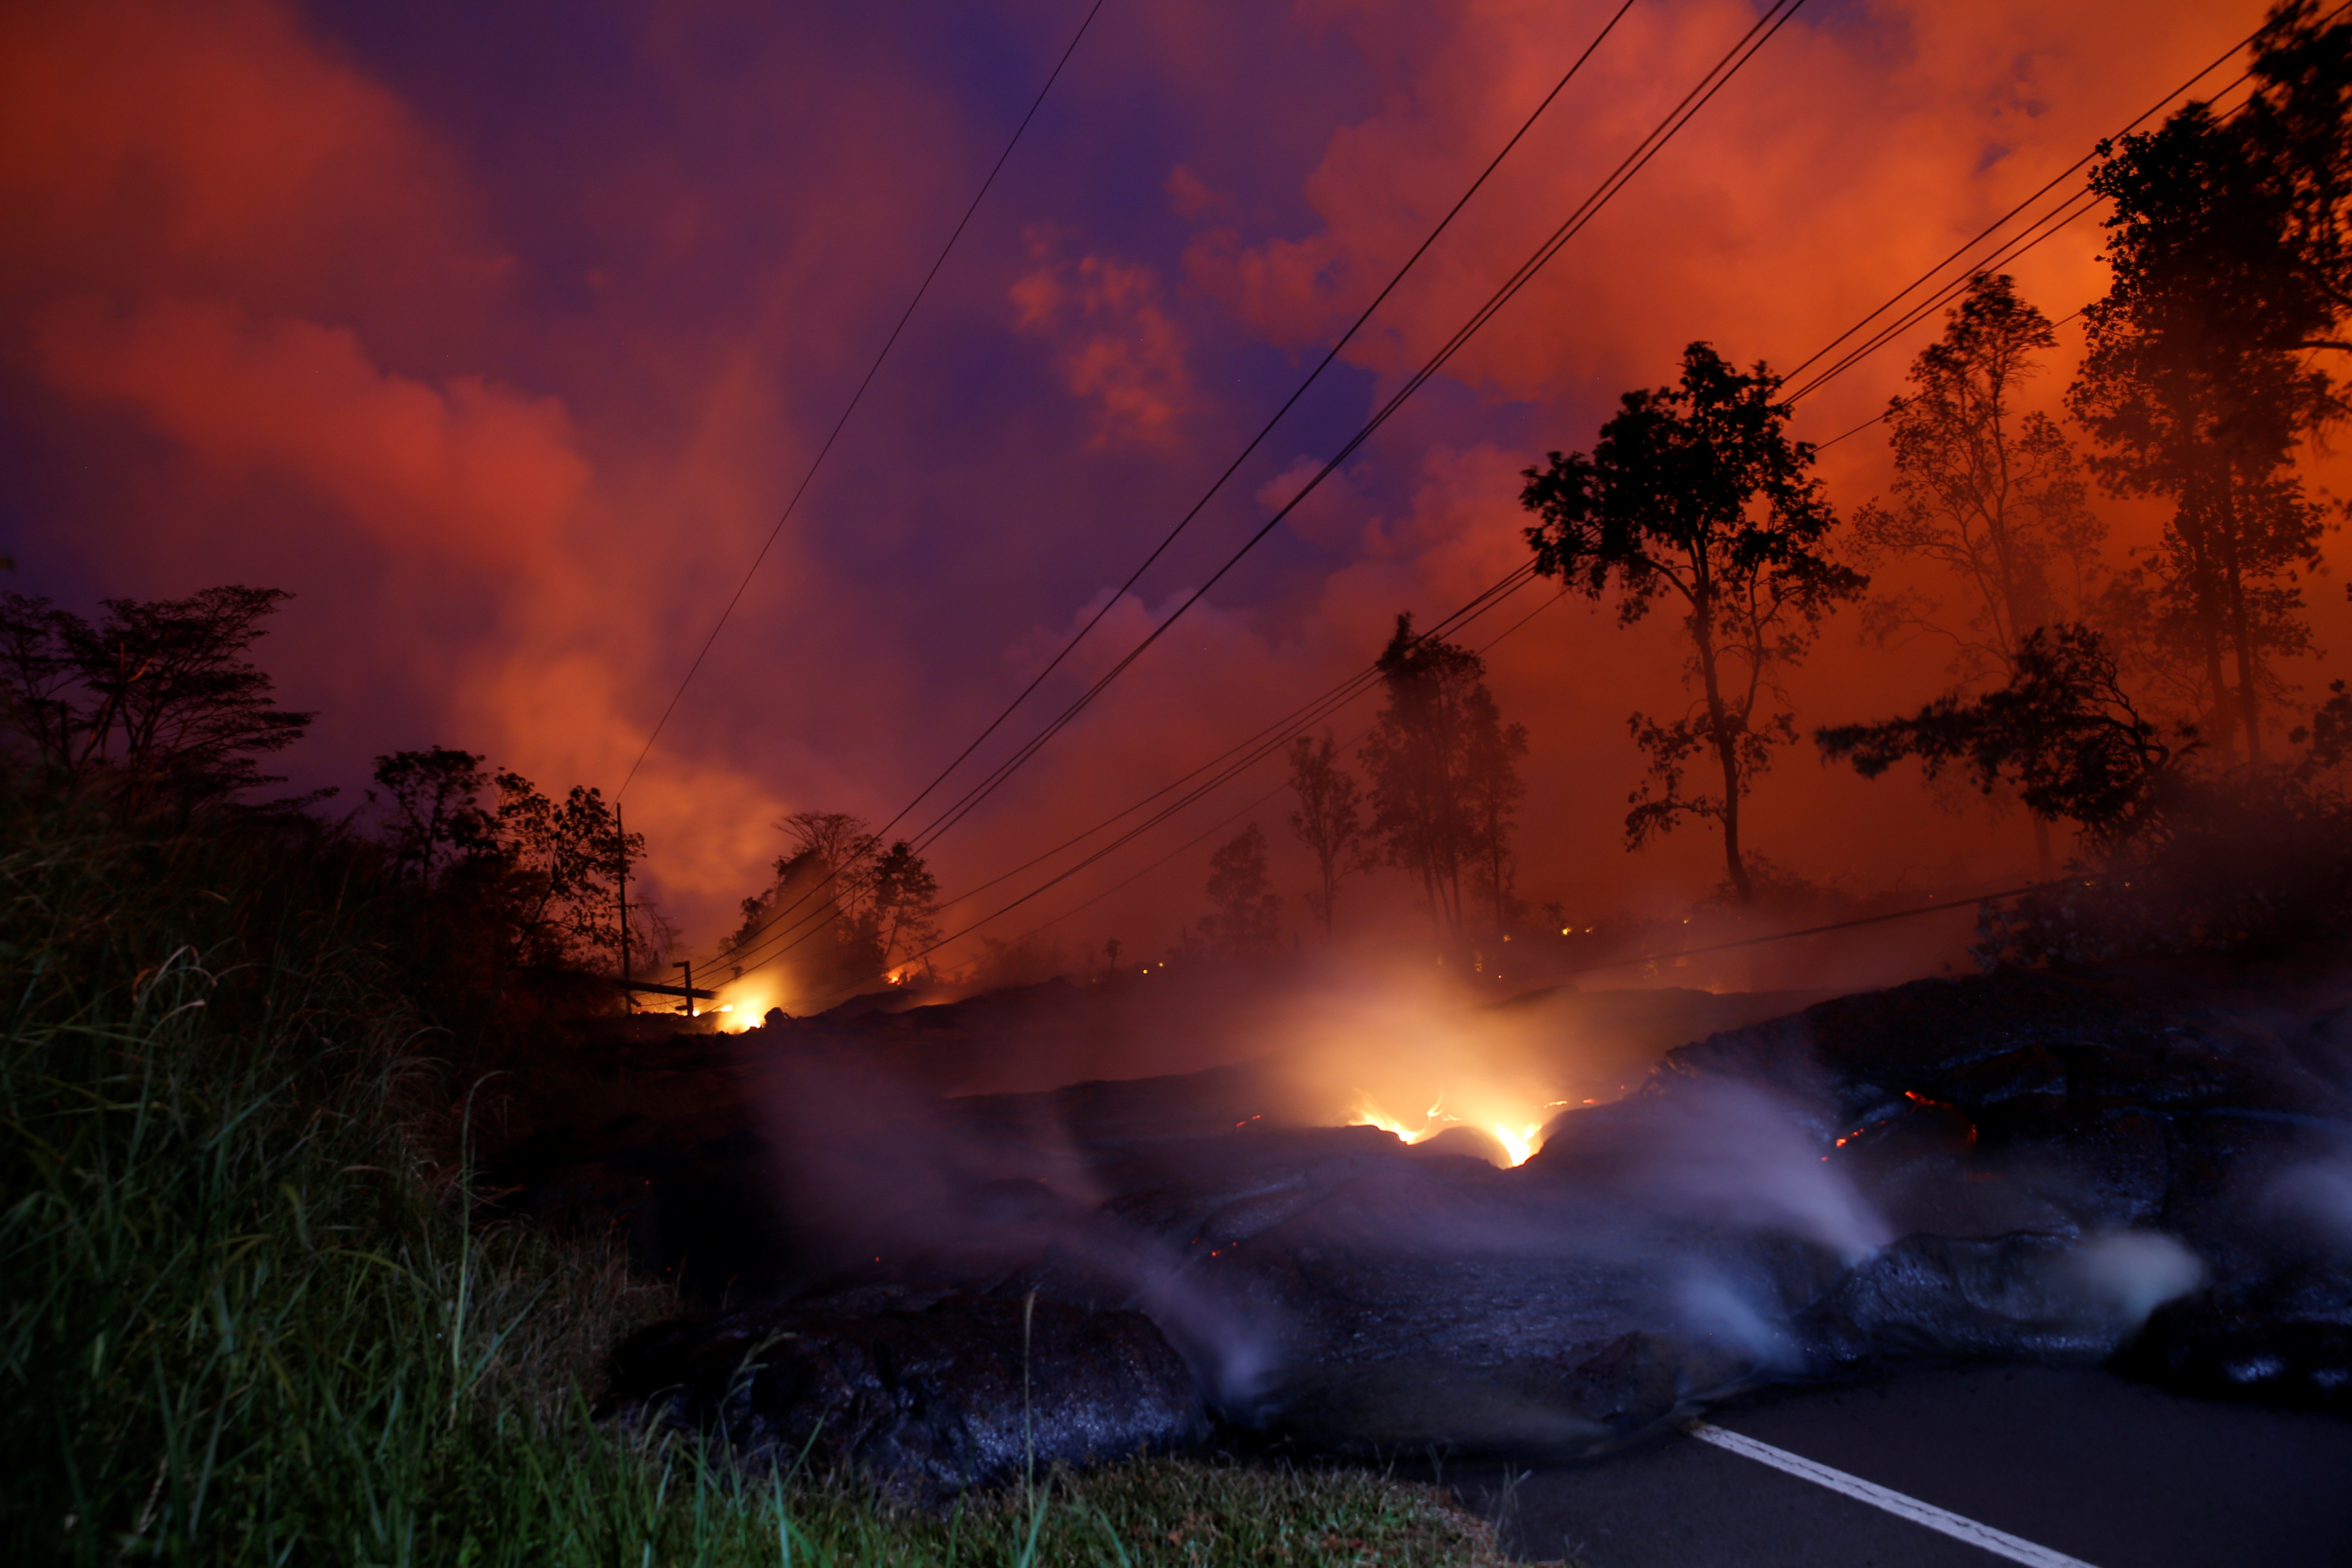 Volcanic gases rise from the Kilauea lava flow that crossed Pohoiki Road near Highway 132, near Pahoa, Hawaii, U.S., May 28, 2018. REUTERS/Marco Garc